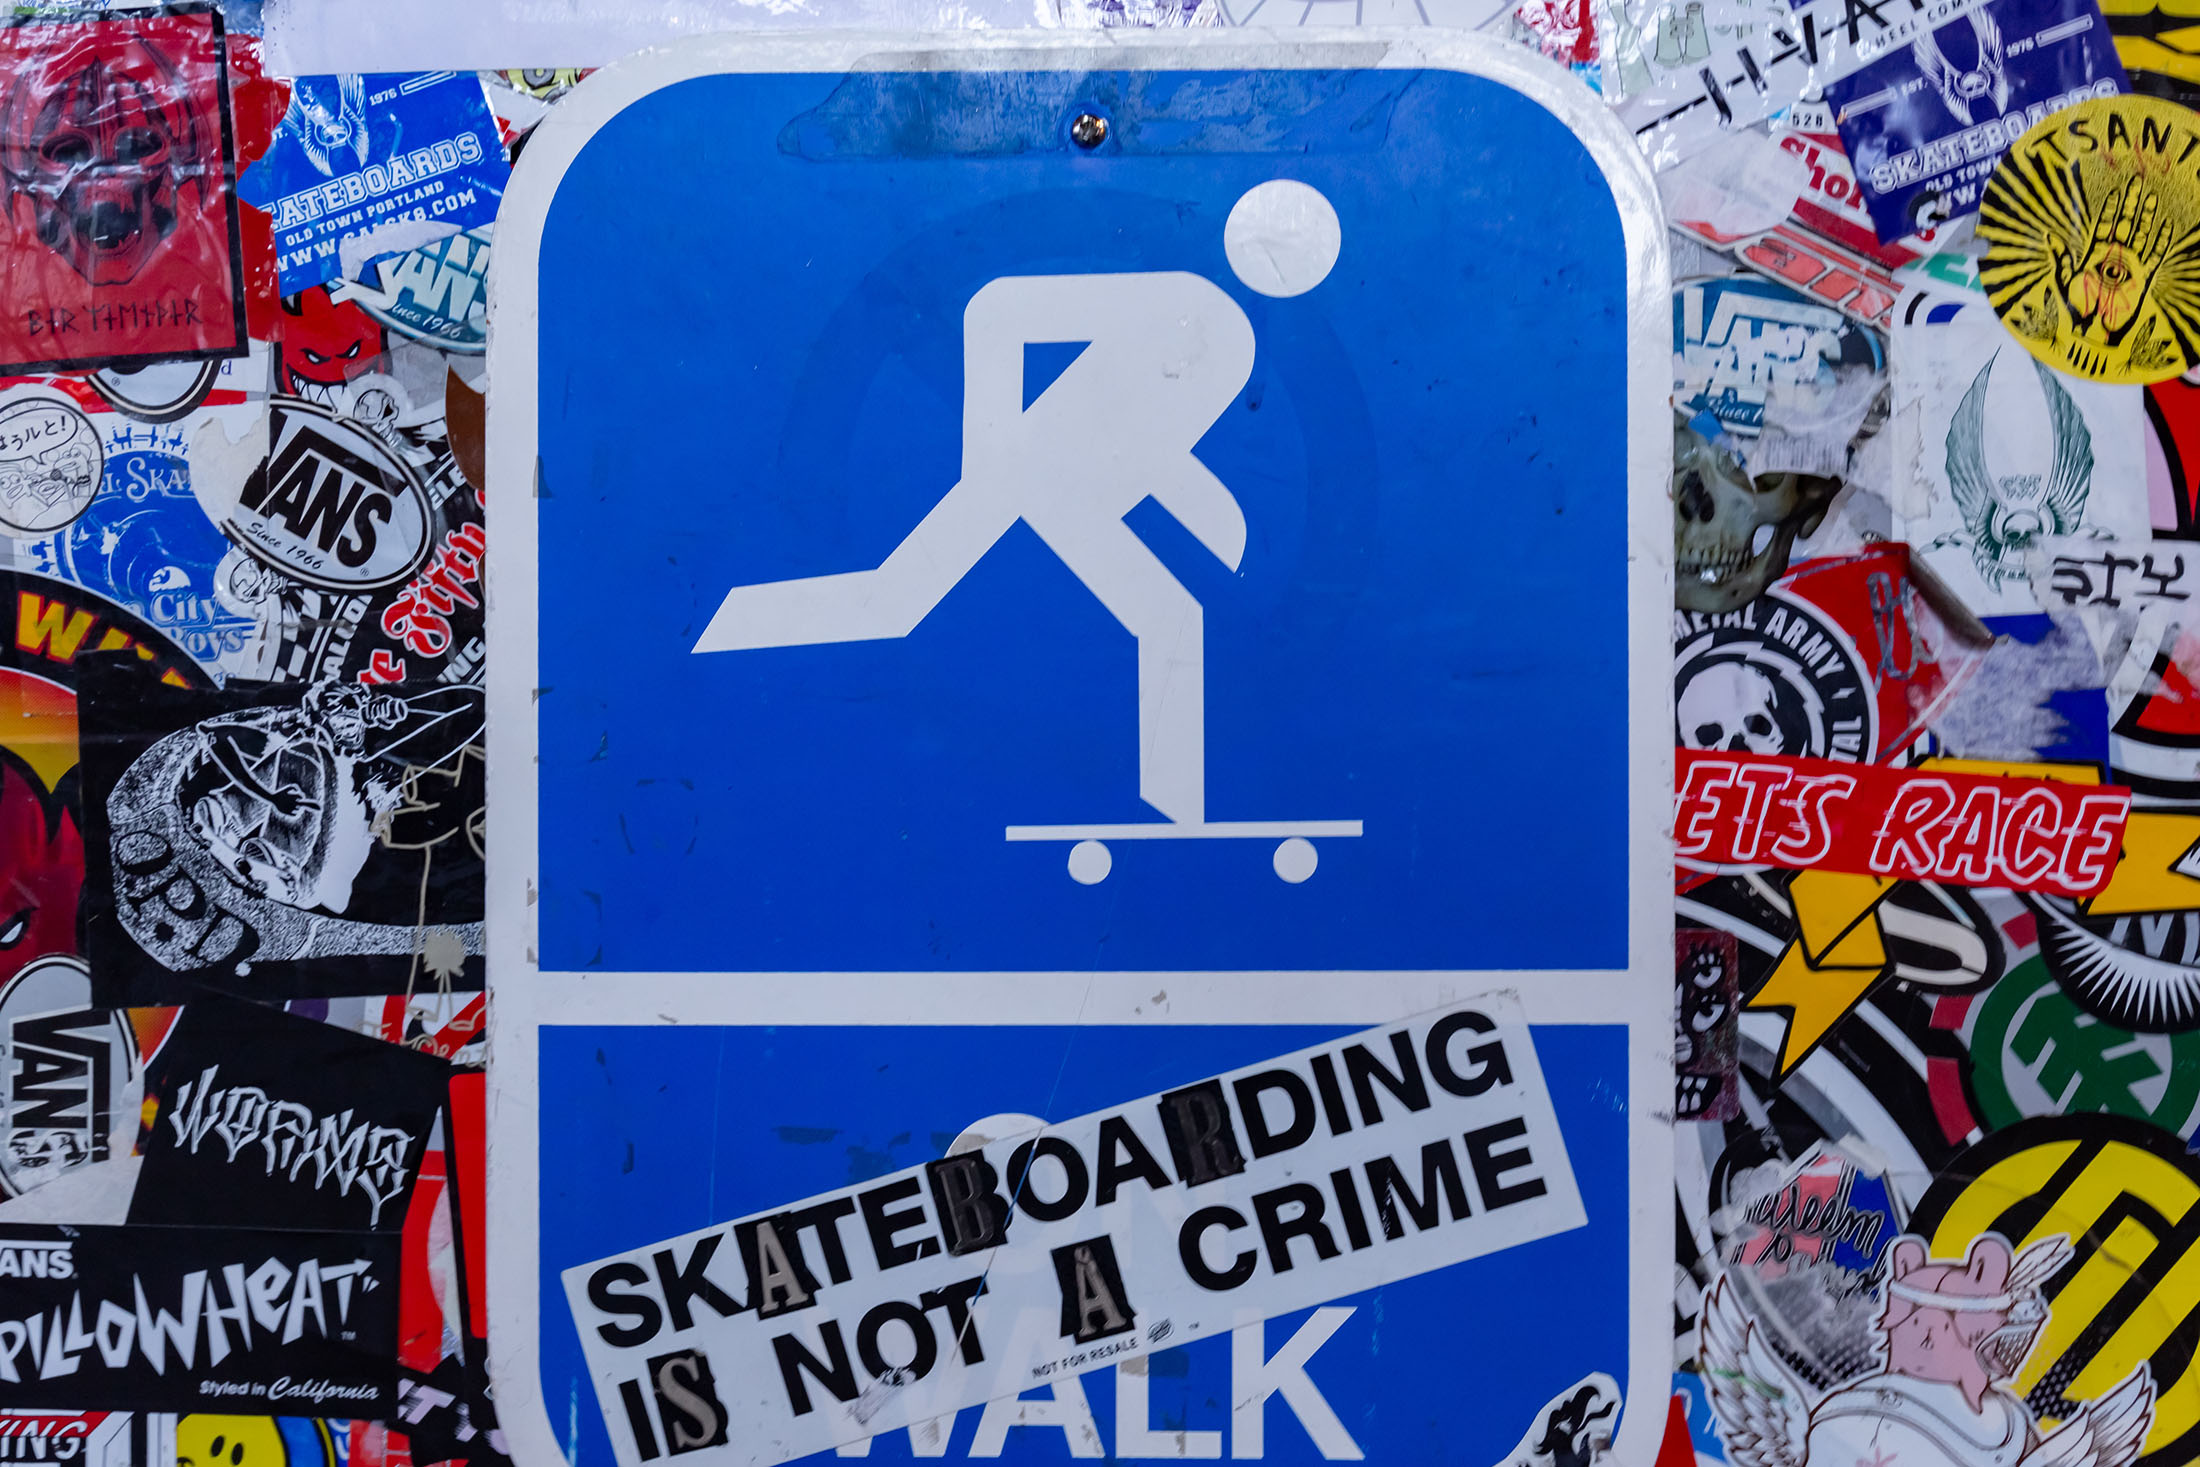 Skateboarding used to be a crime...